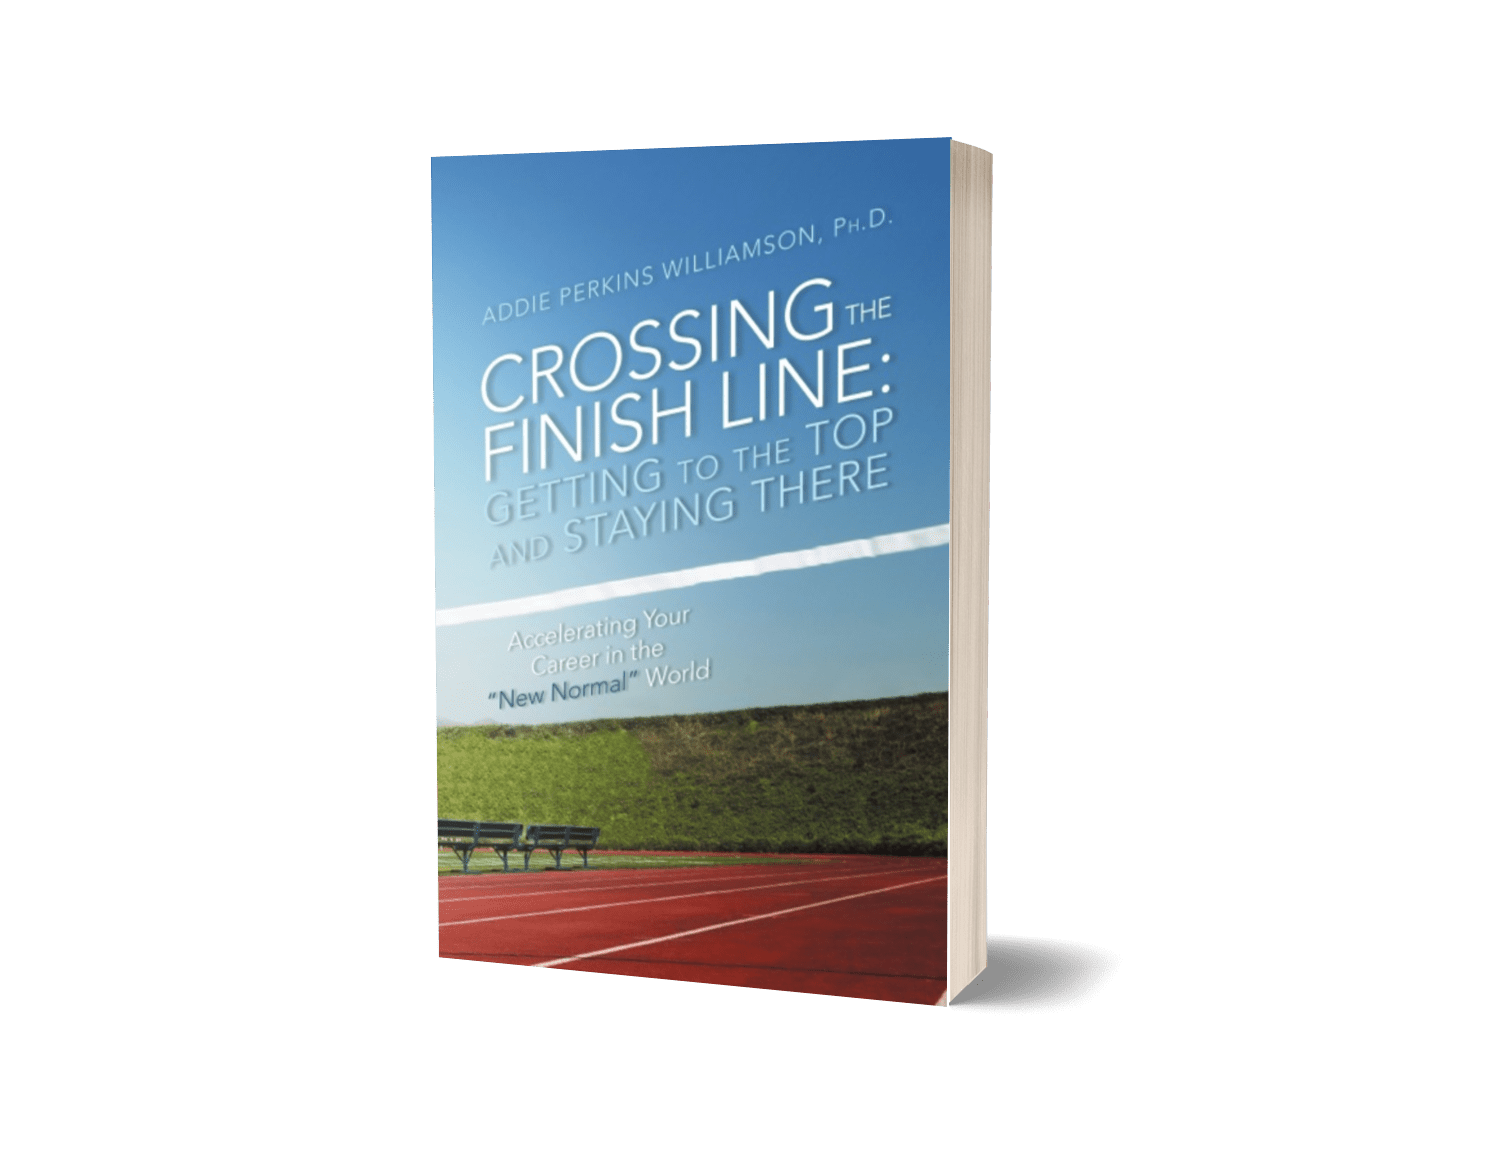 Crossing the Finish Line: Getting to the Top and Staying There